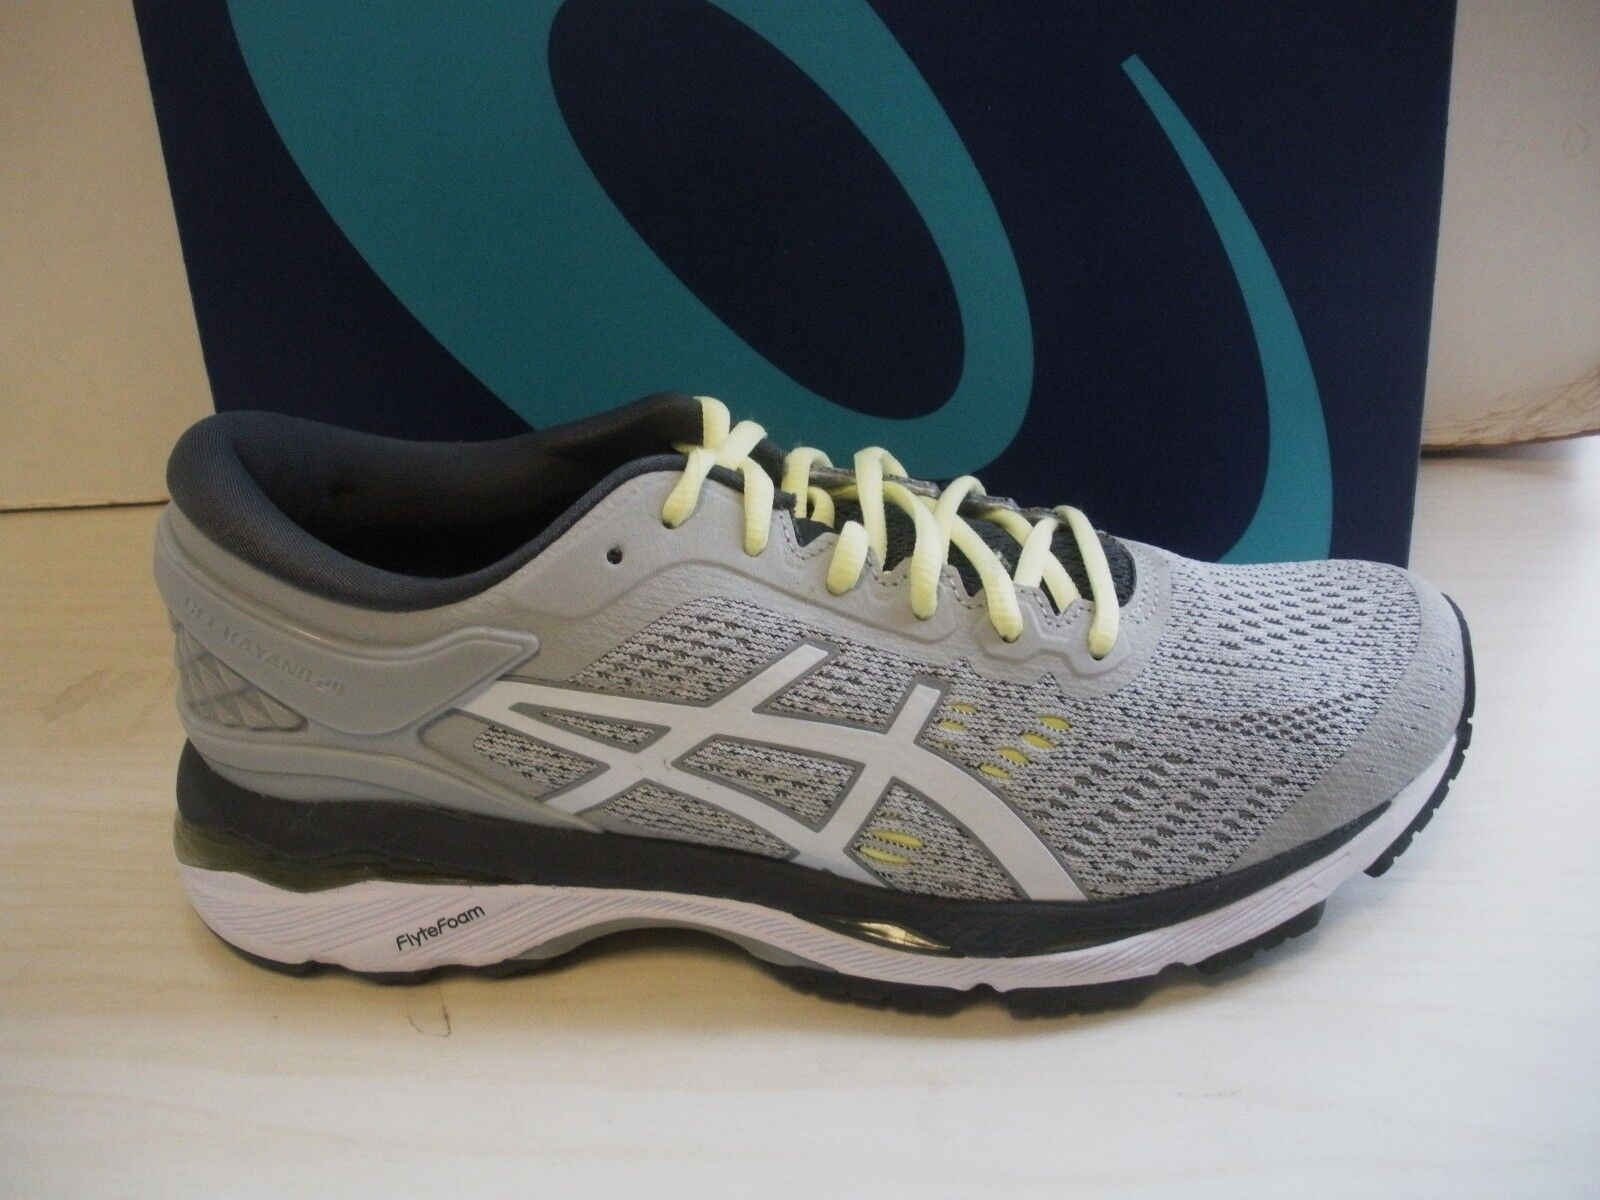 ASICS WOMENS GEL-KAYANO 24 RUNNING SNEAKERS-SHOES-T799N-9601-GLACIER GREY-6.5,10